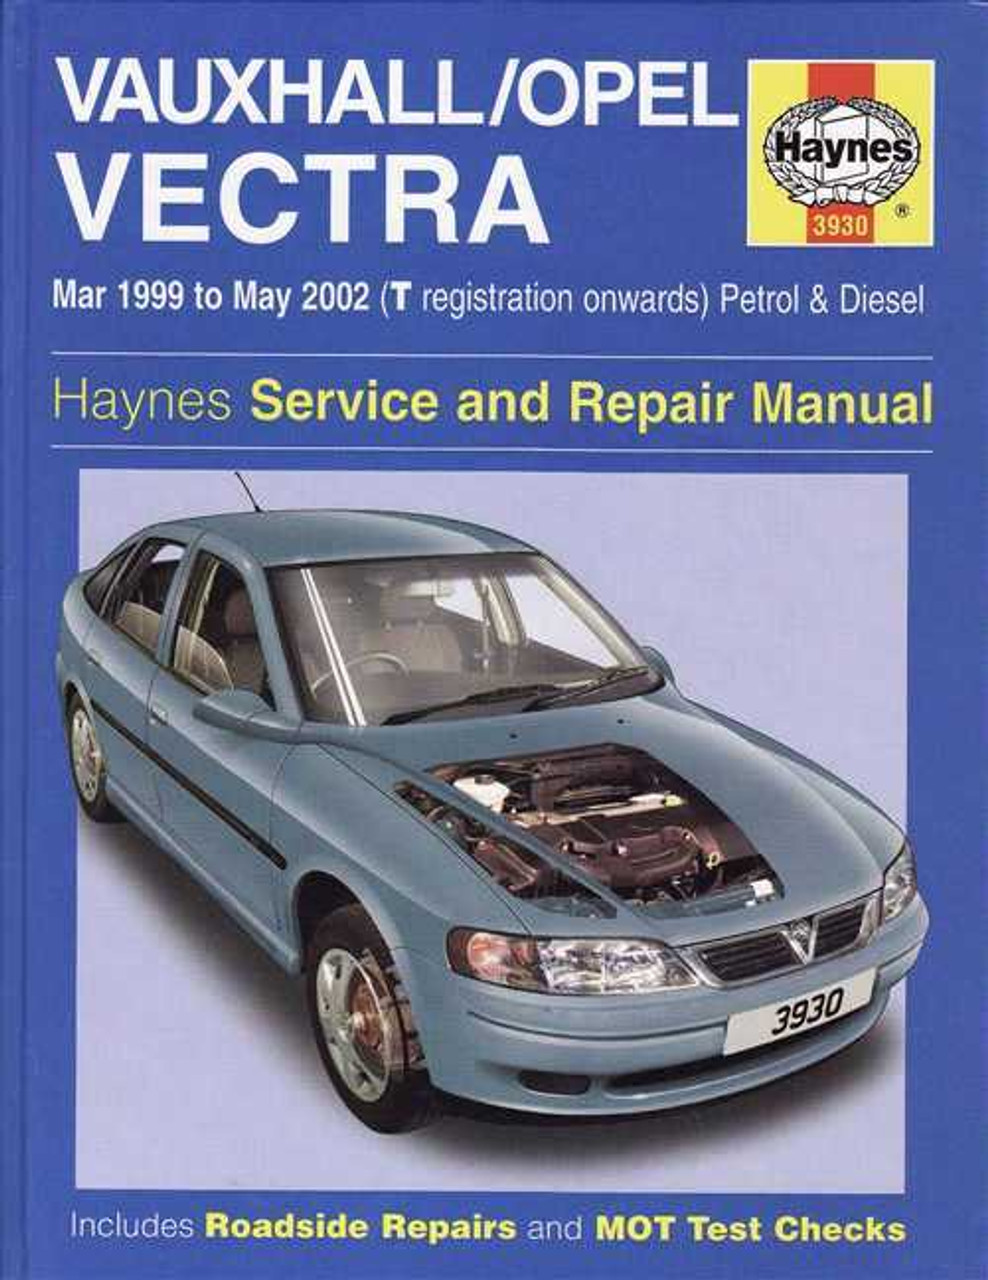 holden vectra vauxhall opel 1999 2002 workshop manual rh automotobookshop com au holden vectra workshop manual free download holden vectra 2000 manual